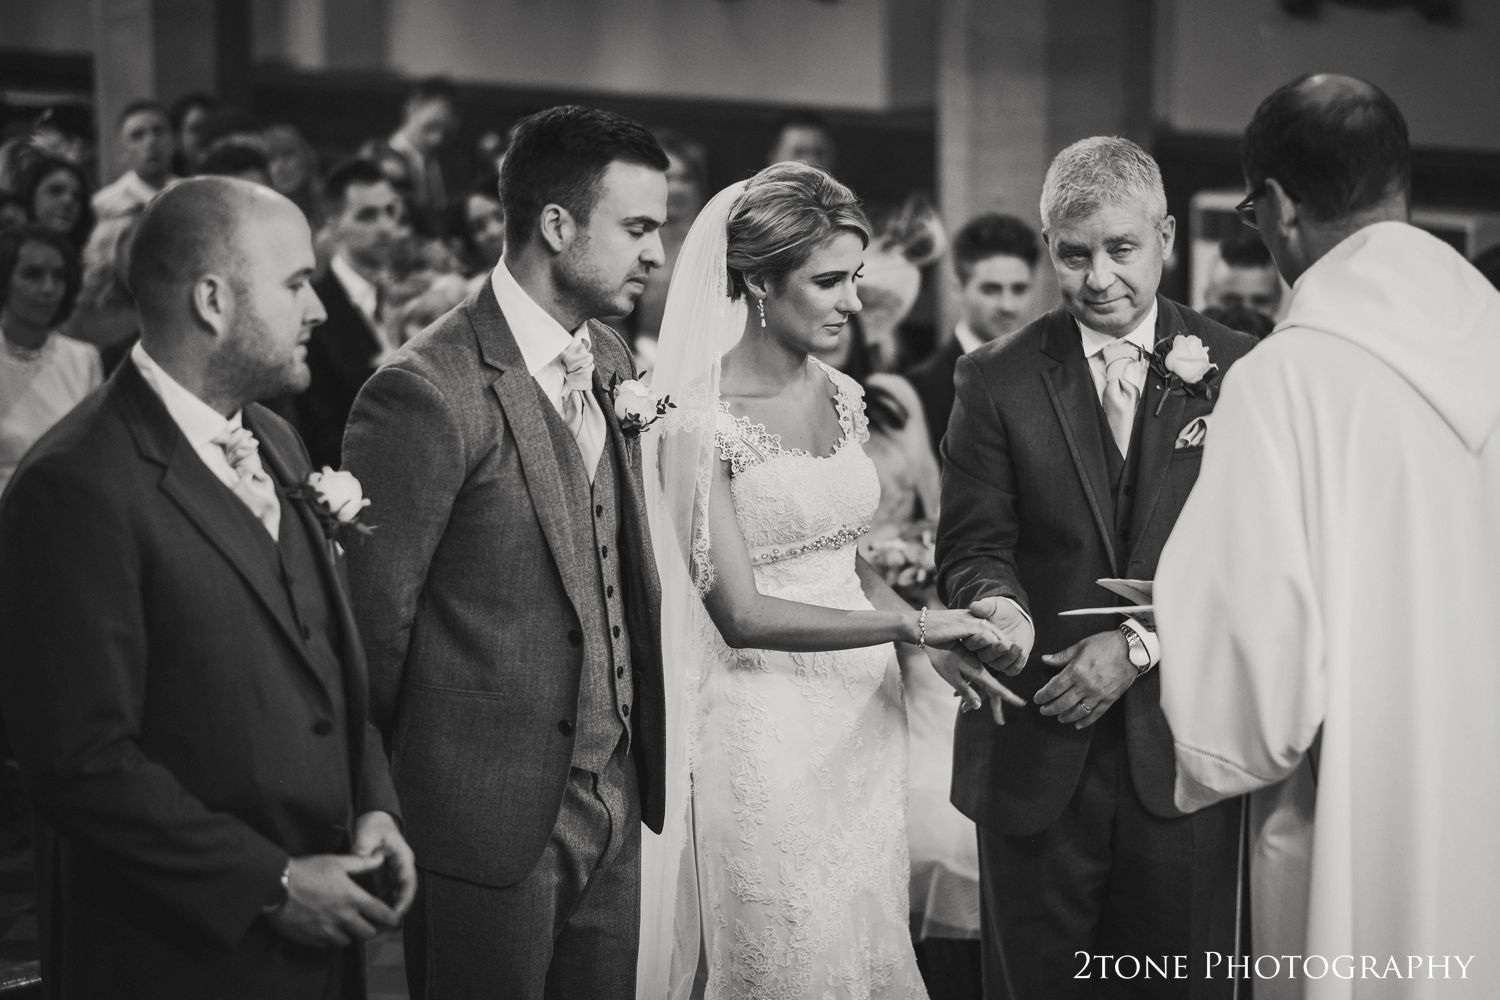 A proud moment for any Dad, giving his daughter away on her wedding day.